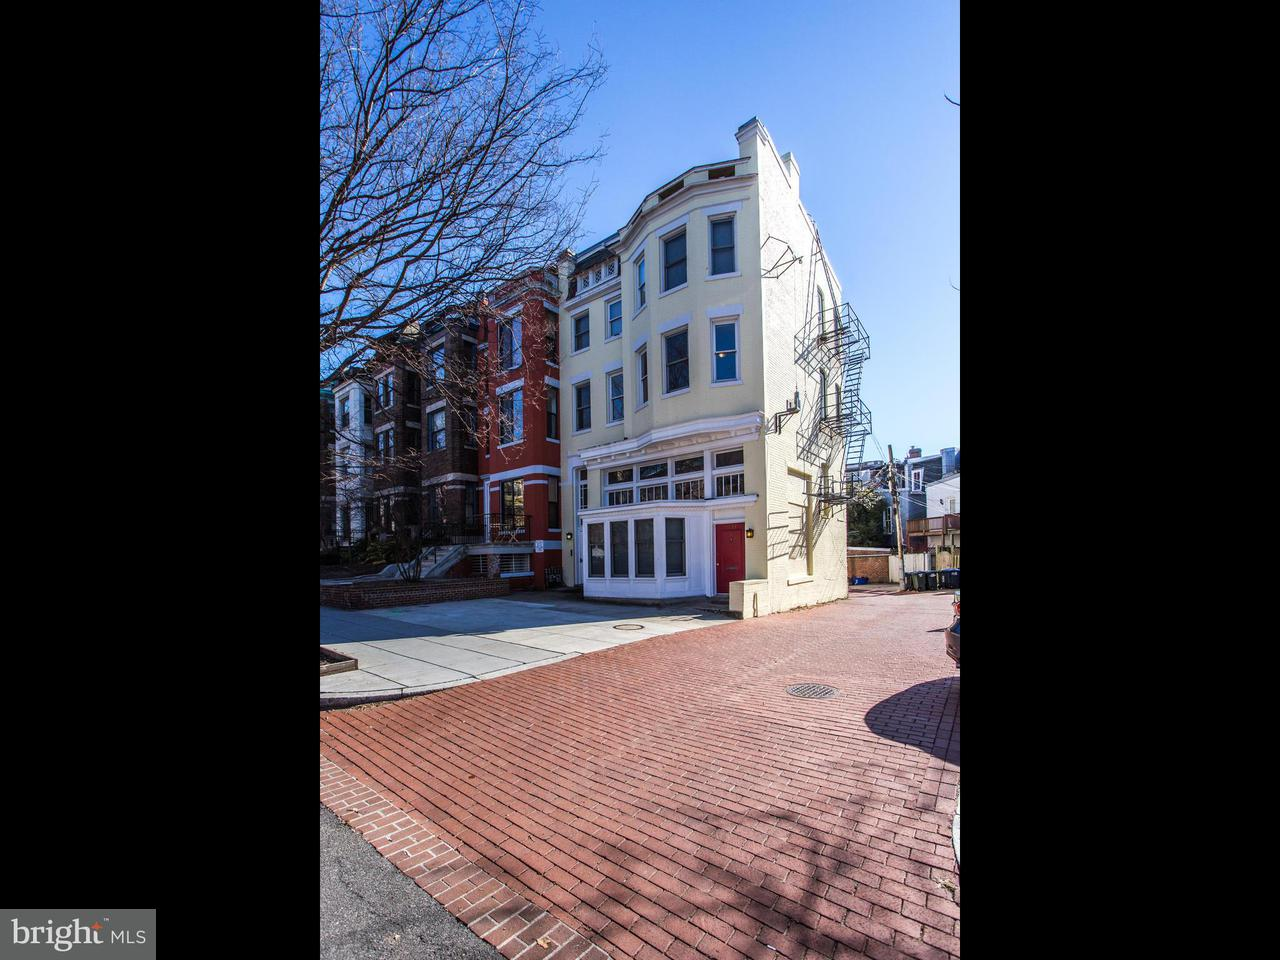 Townhouse for Sale at 1954 Calvert St Nw 1954 Calvert St Nw Washington, District Of Columbia 20009 United States